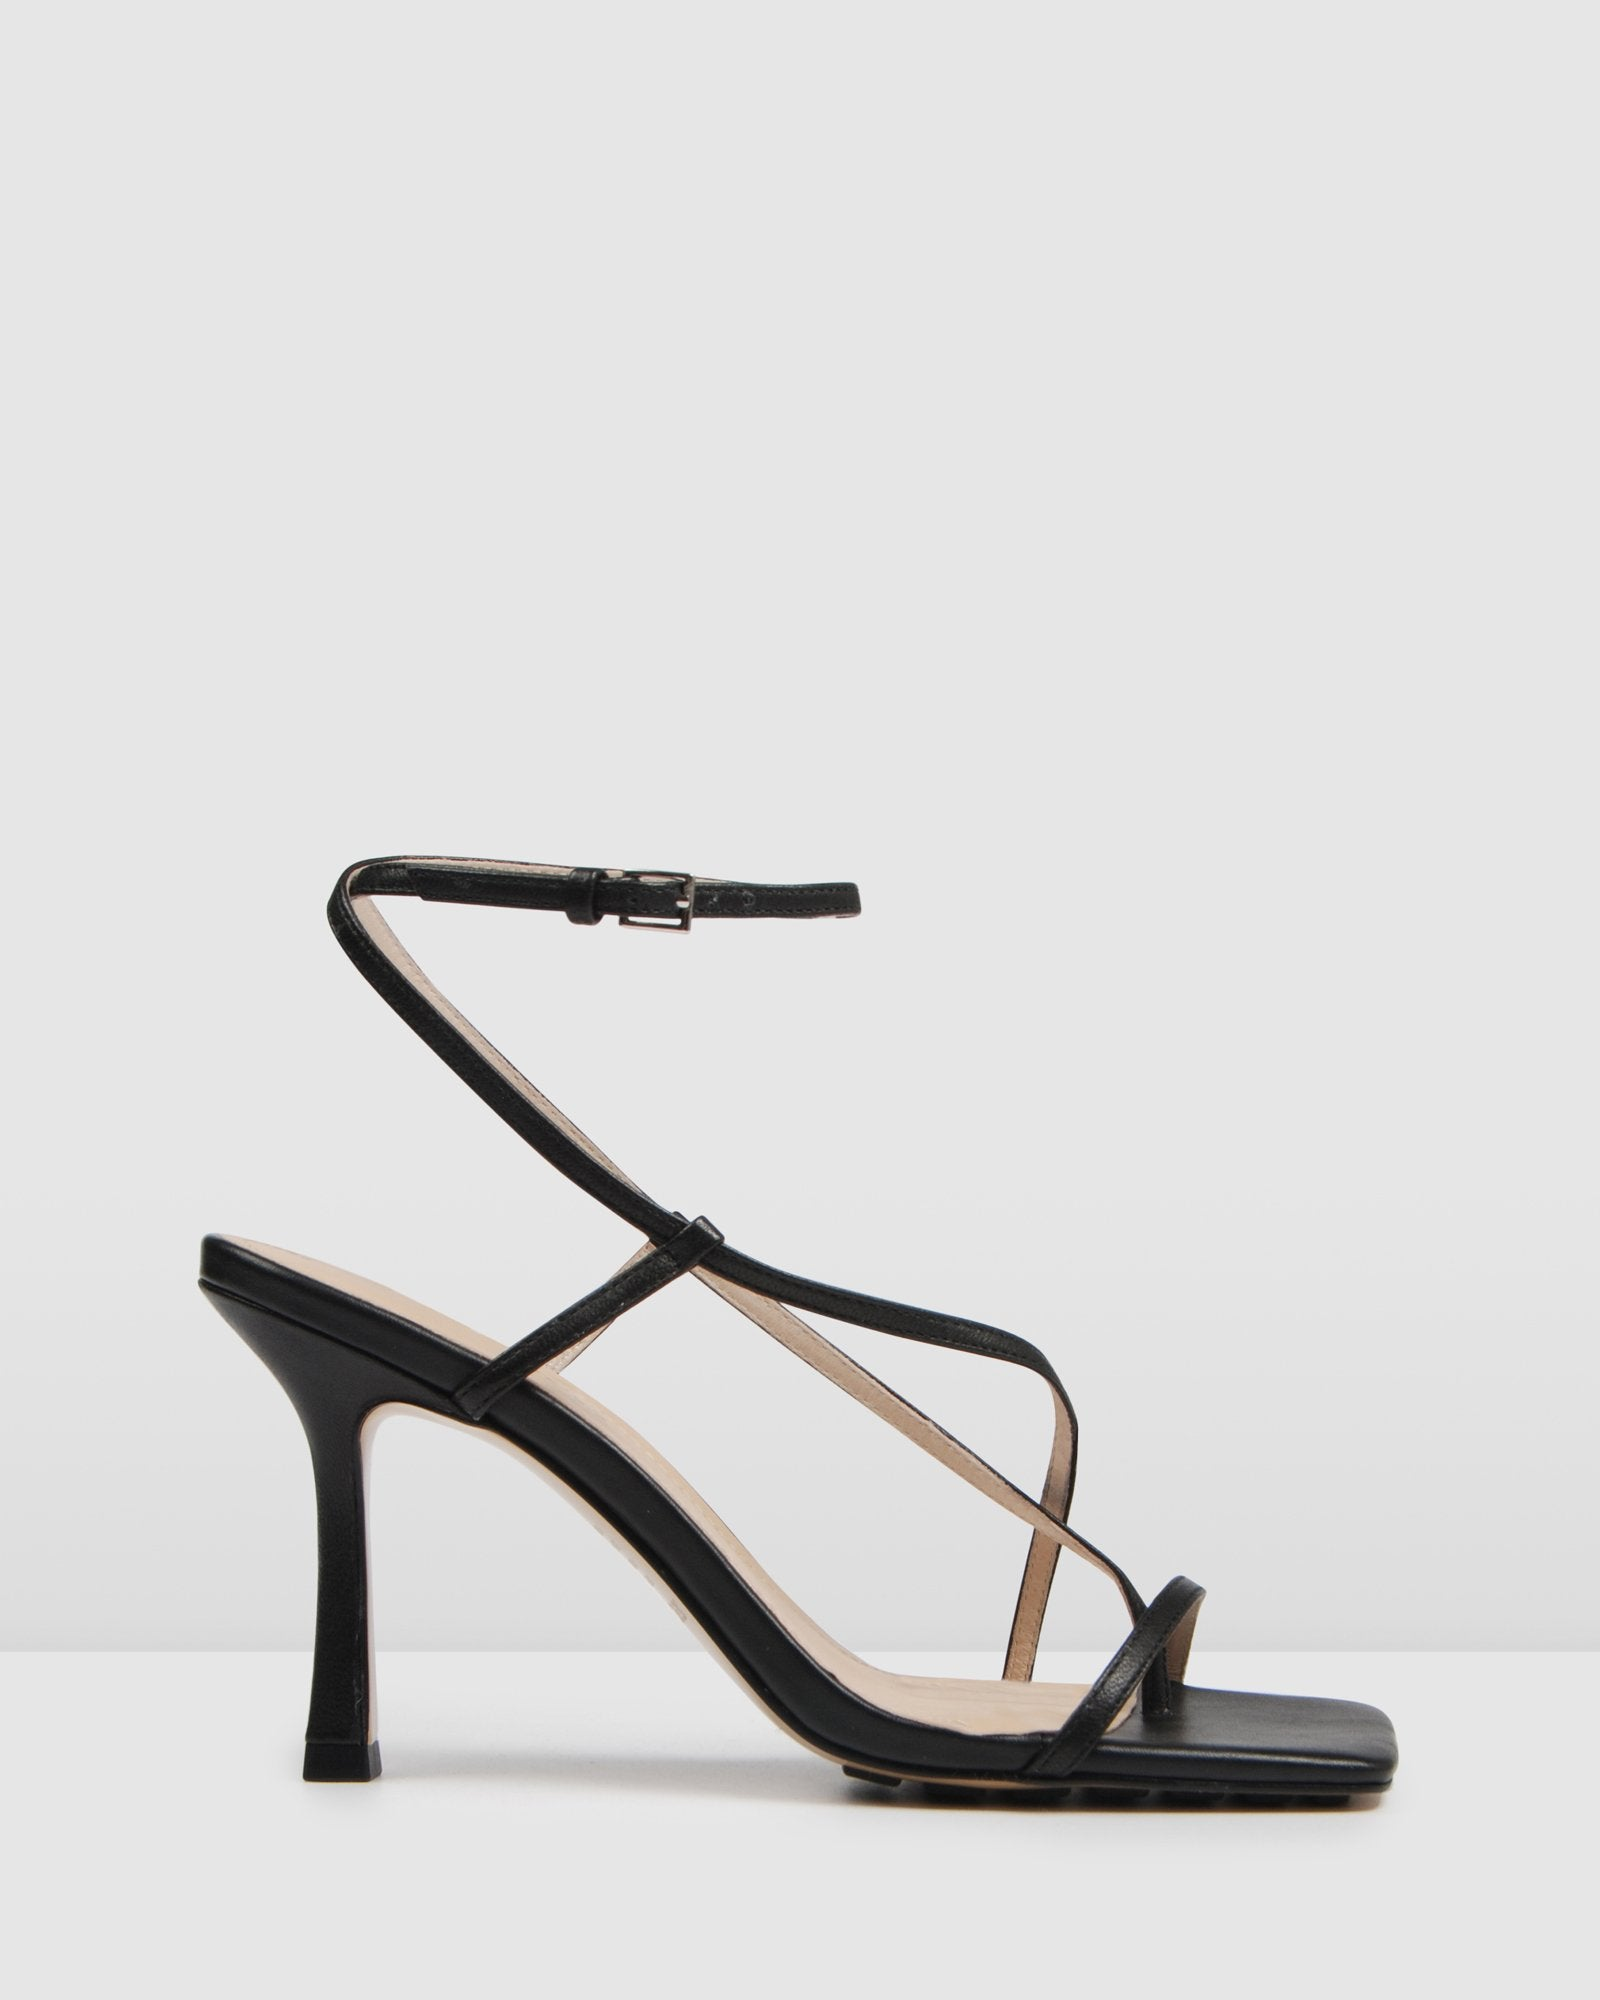 RYOKO HIGH HEEL SANDALS BLACK LEATHER